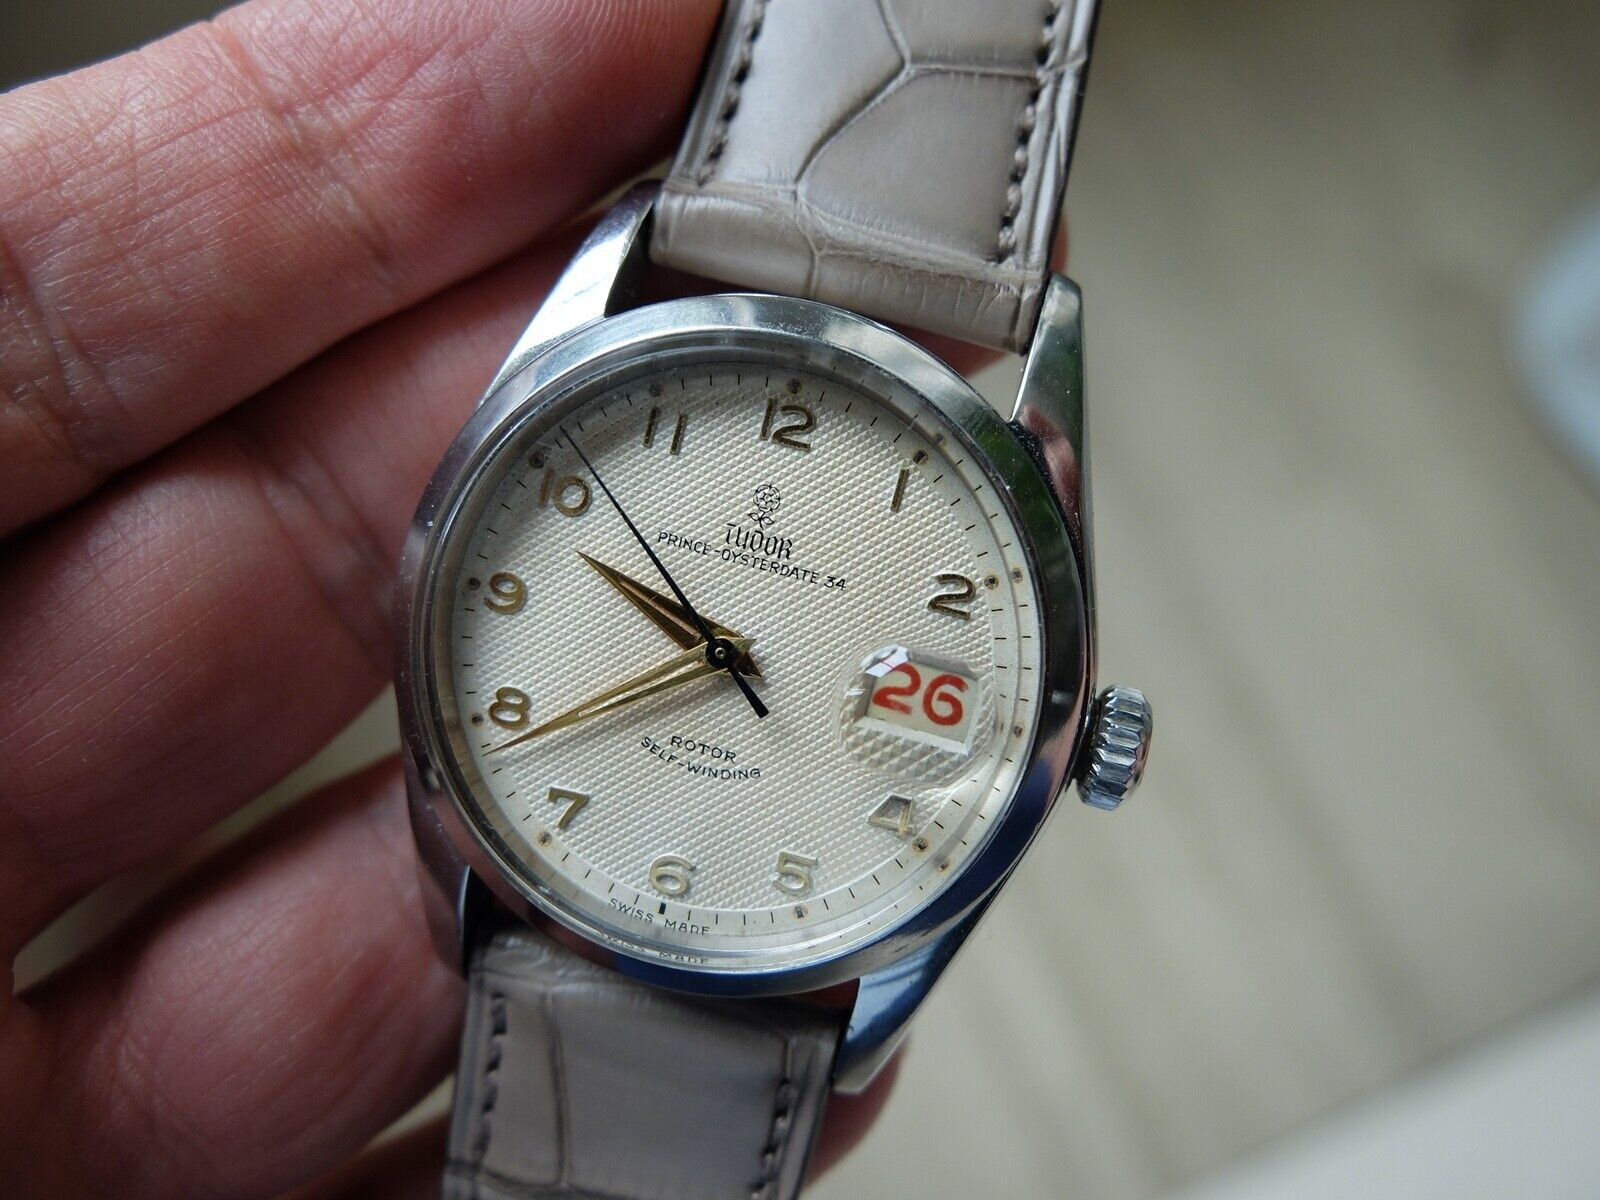 Rare Large Vintage Rolex Tudor ref. 7914 Watch with Original Mint Guilloche Dial - watch picture 1